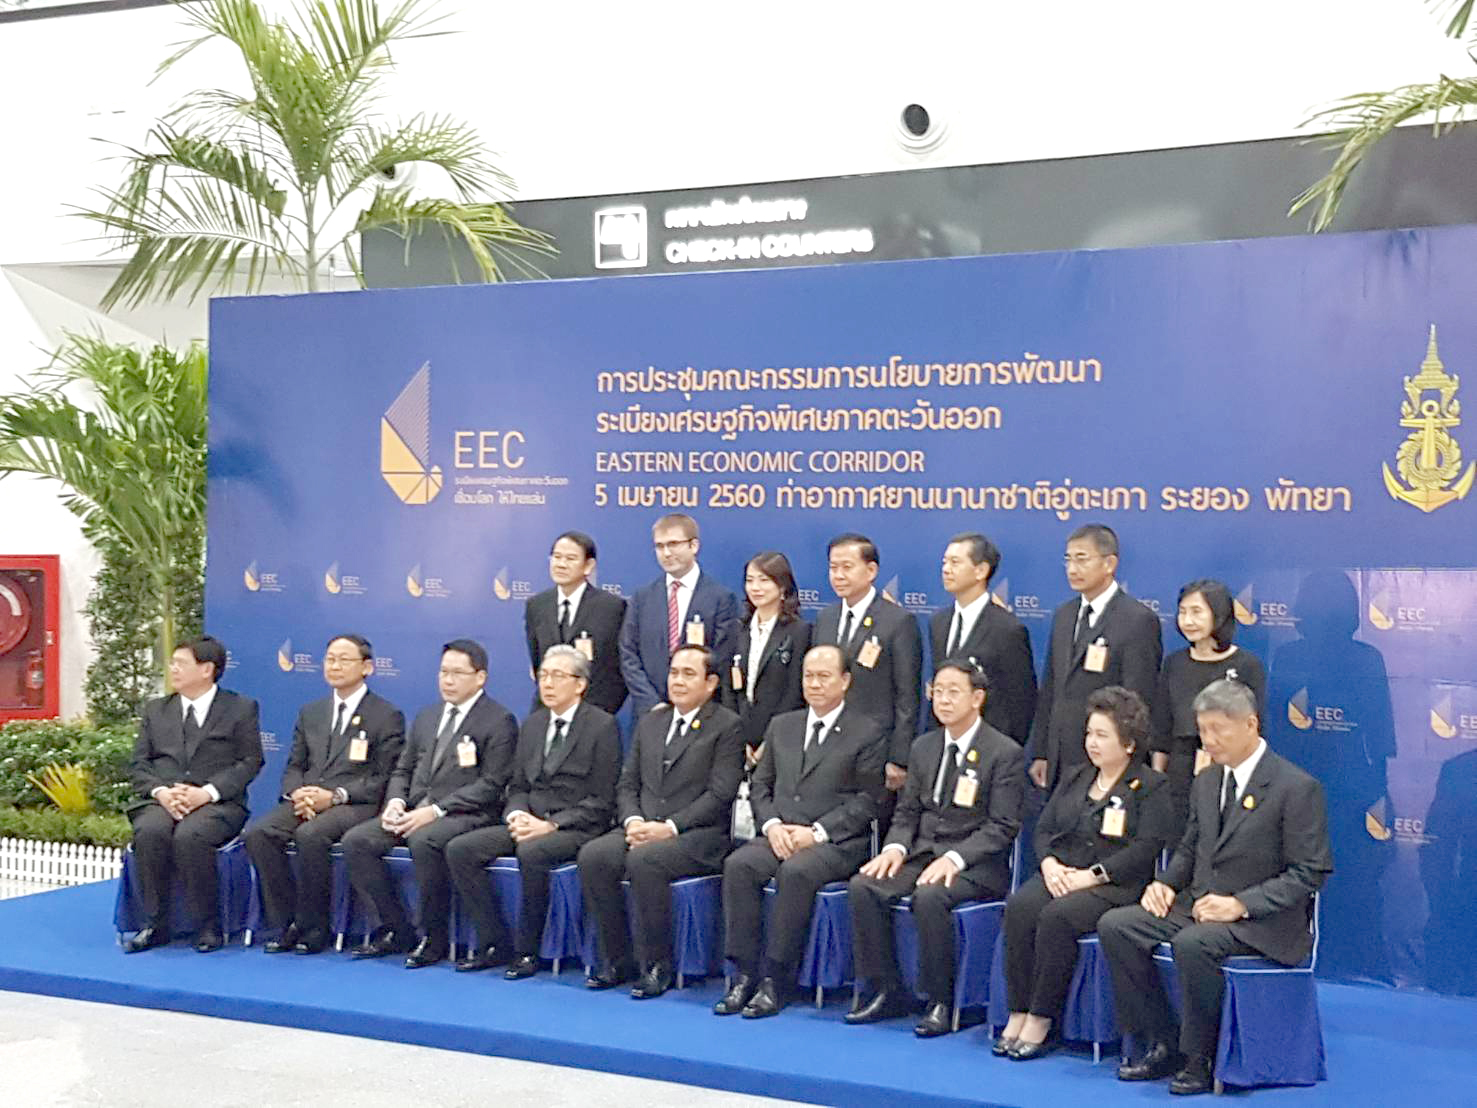 Prime Minister Prayut Chan-ocha met with over 20 senior executives of leading private companies who are interested in investing in the Eastern Economic Corridor.